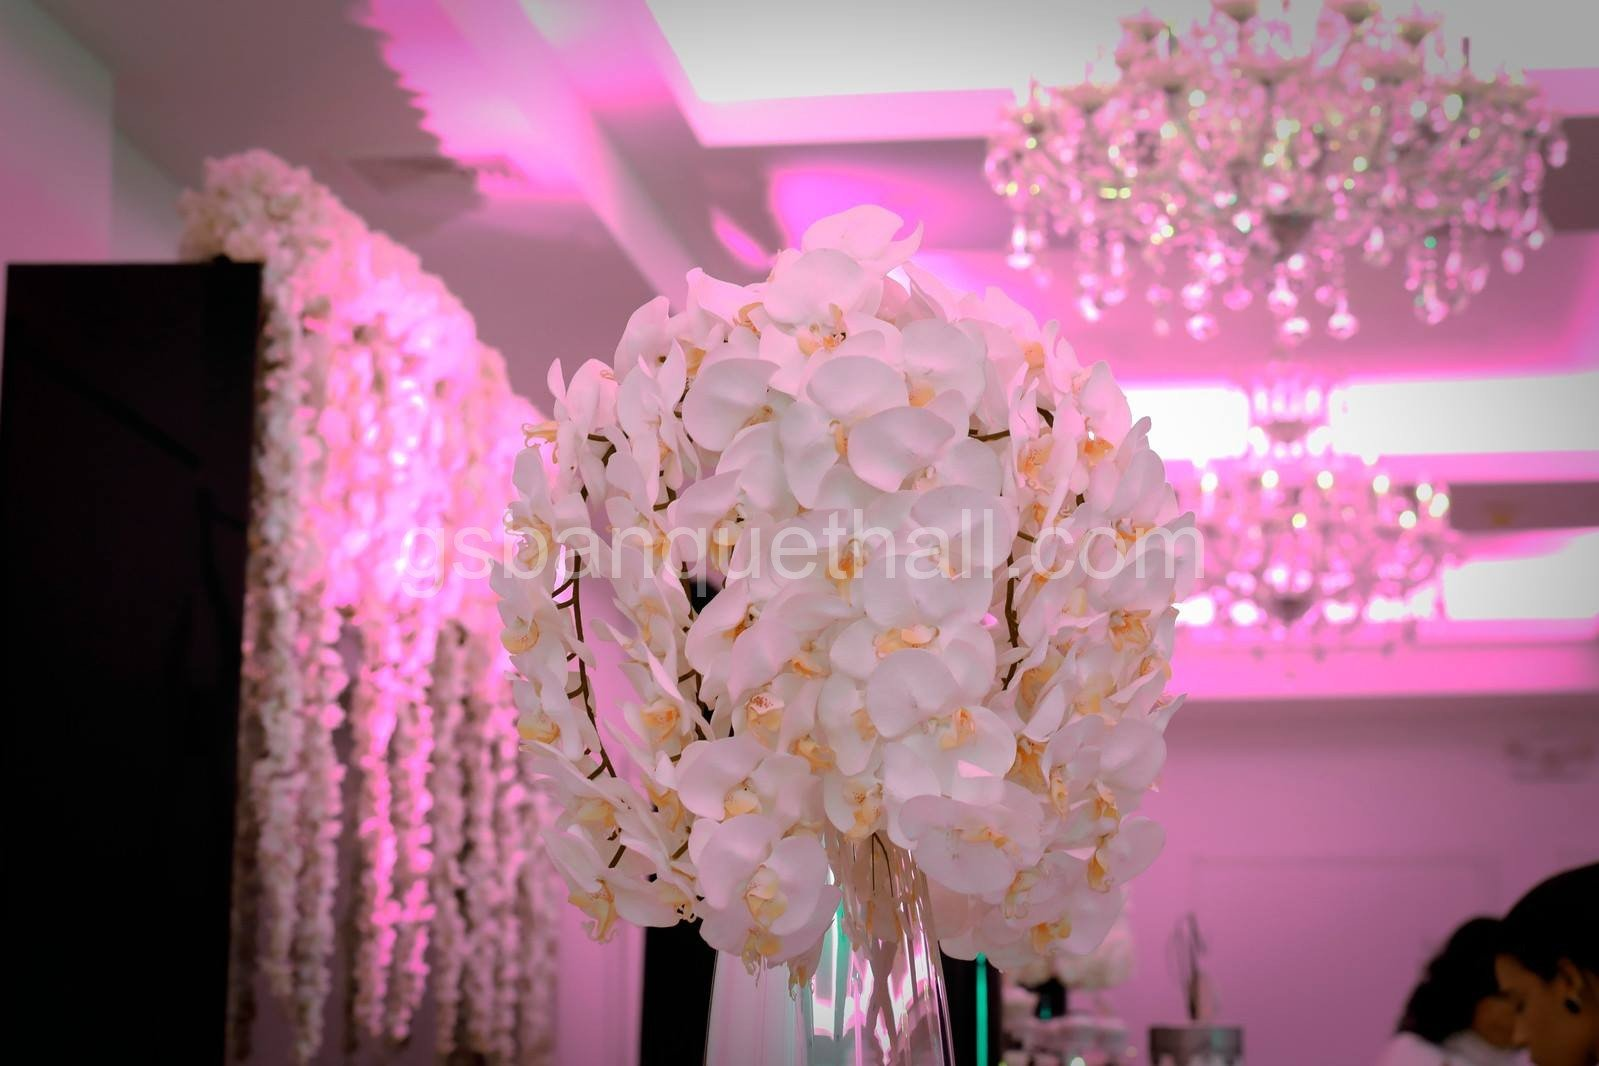 Grand opening of our new location in manhattan shop for hanging birthday decorations birthday banners table decorations confetti and more wedding hall banquet hall party decorations junglespirit Image collections